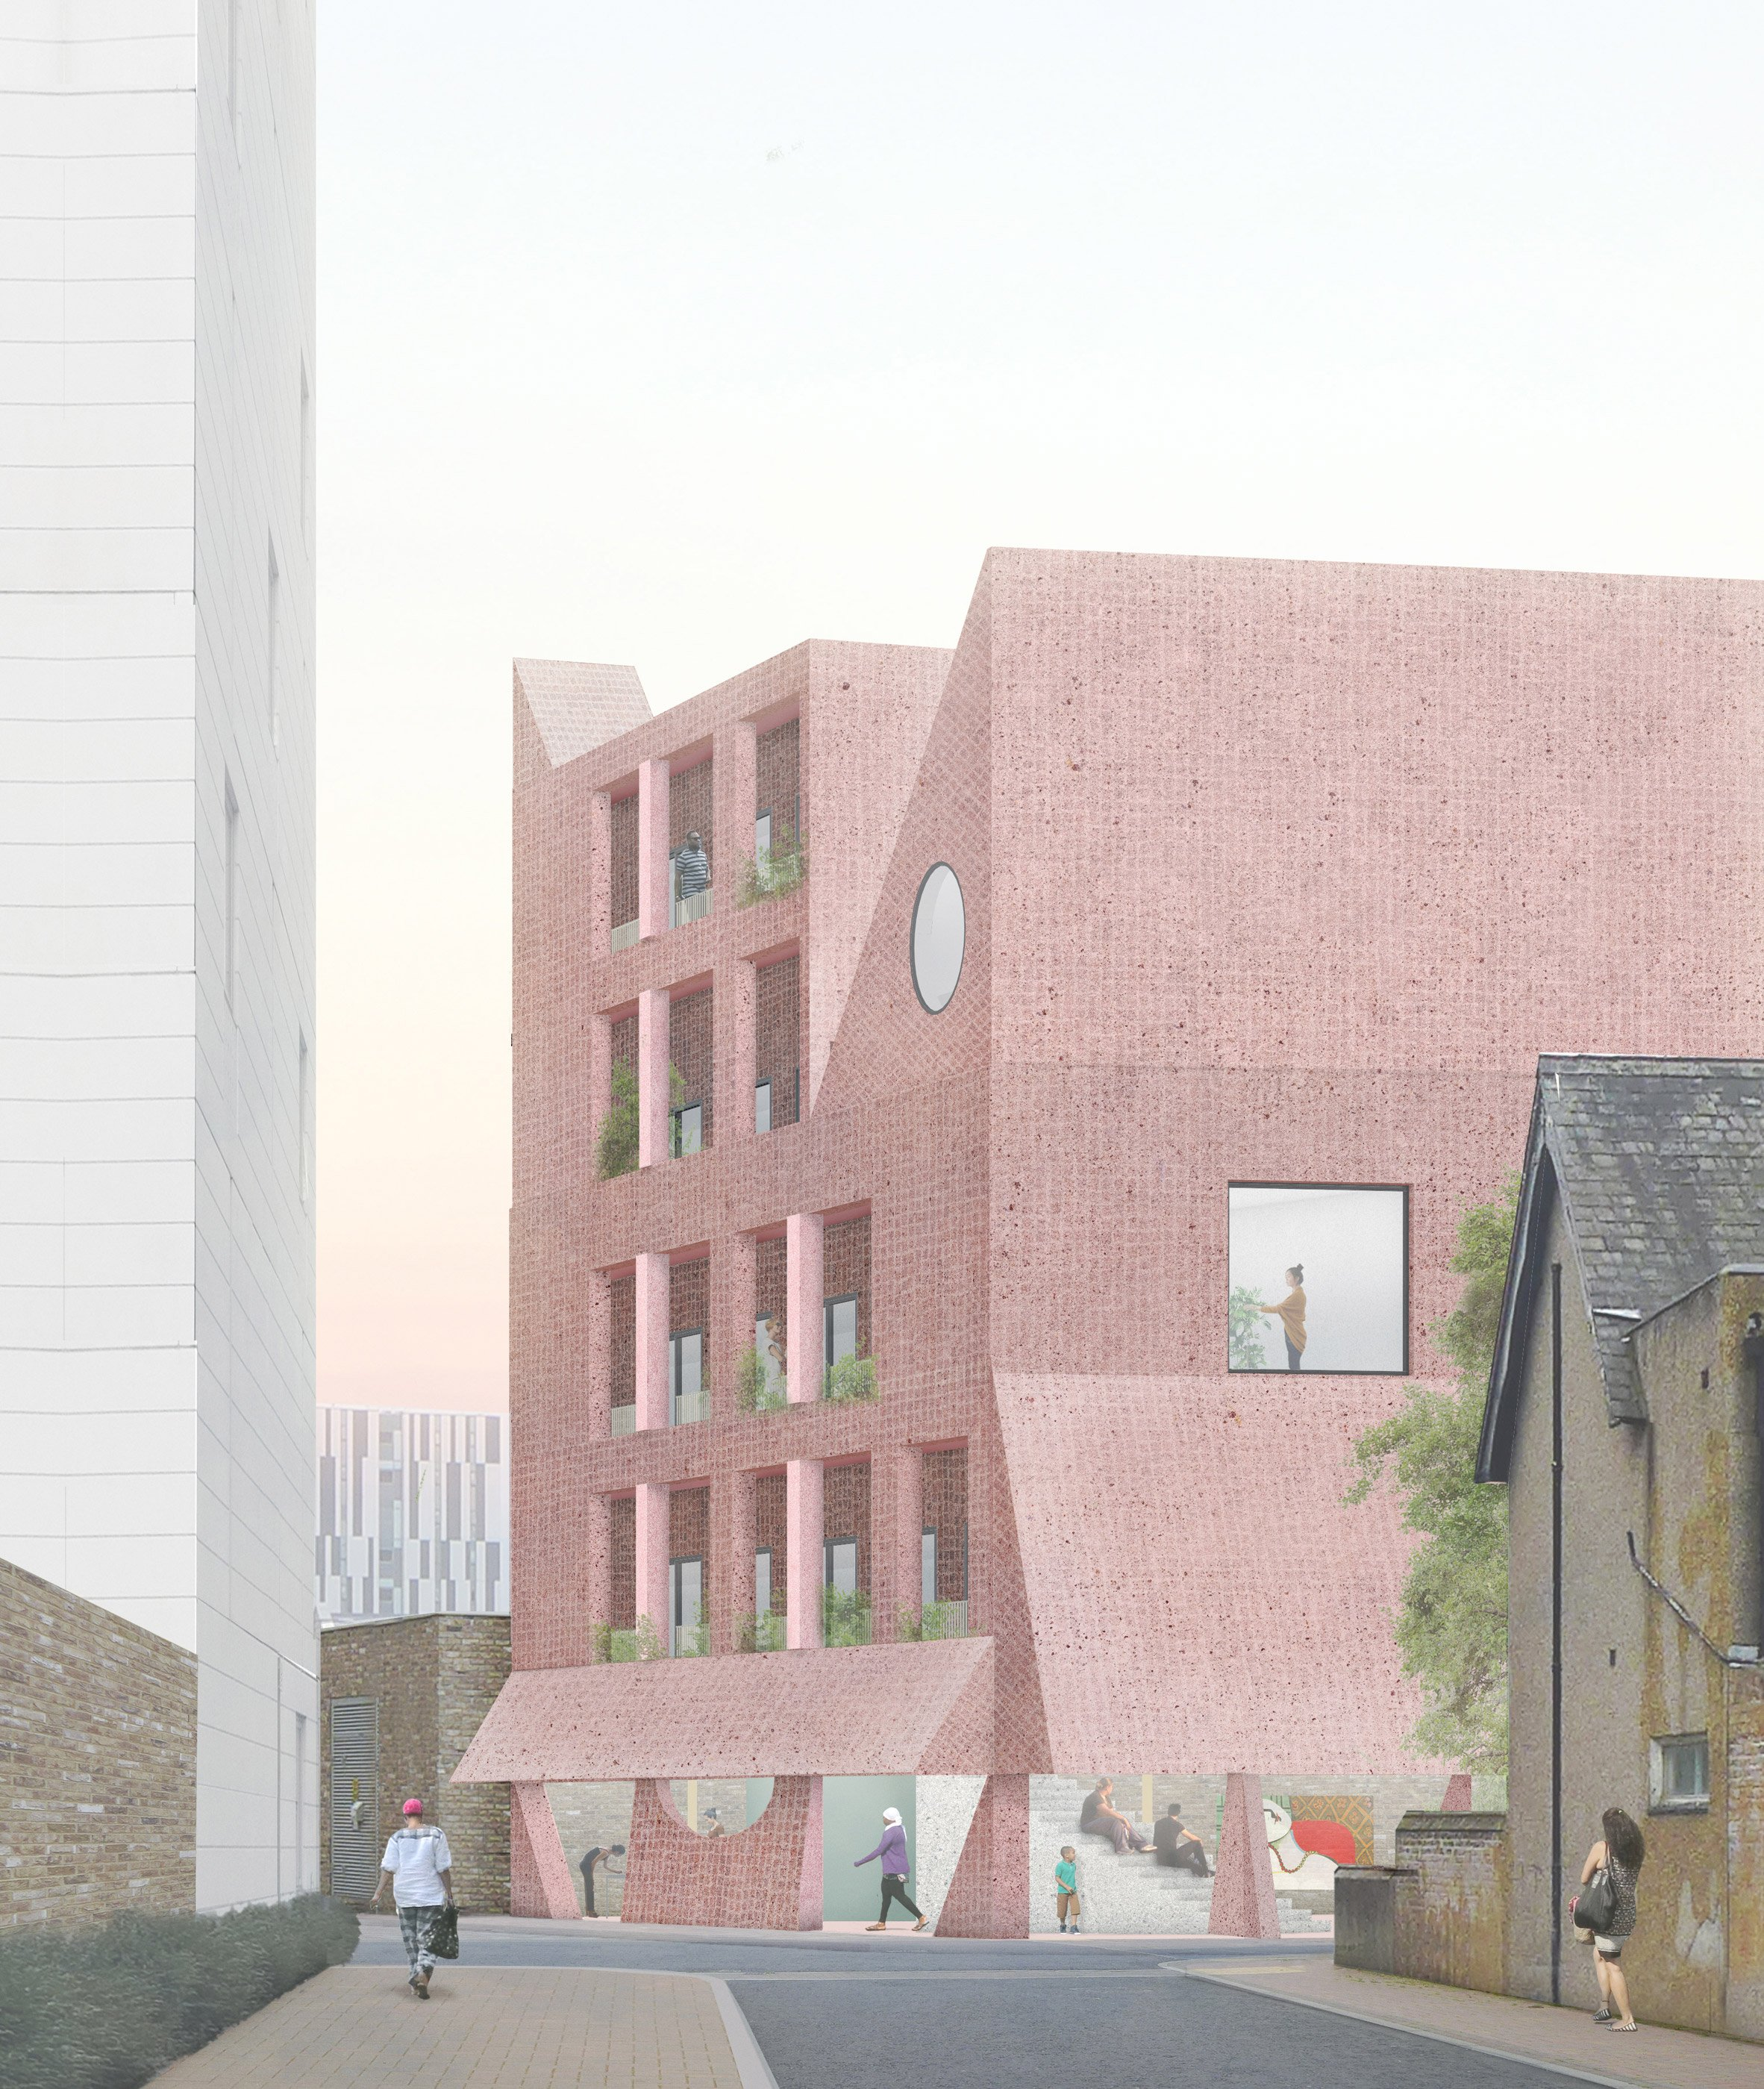 Grayson Perry and Apparata team up to create A House for Artists in east London